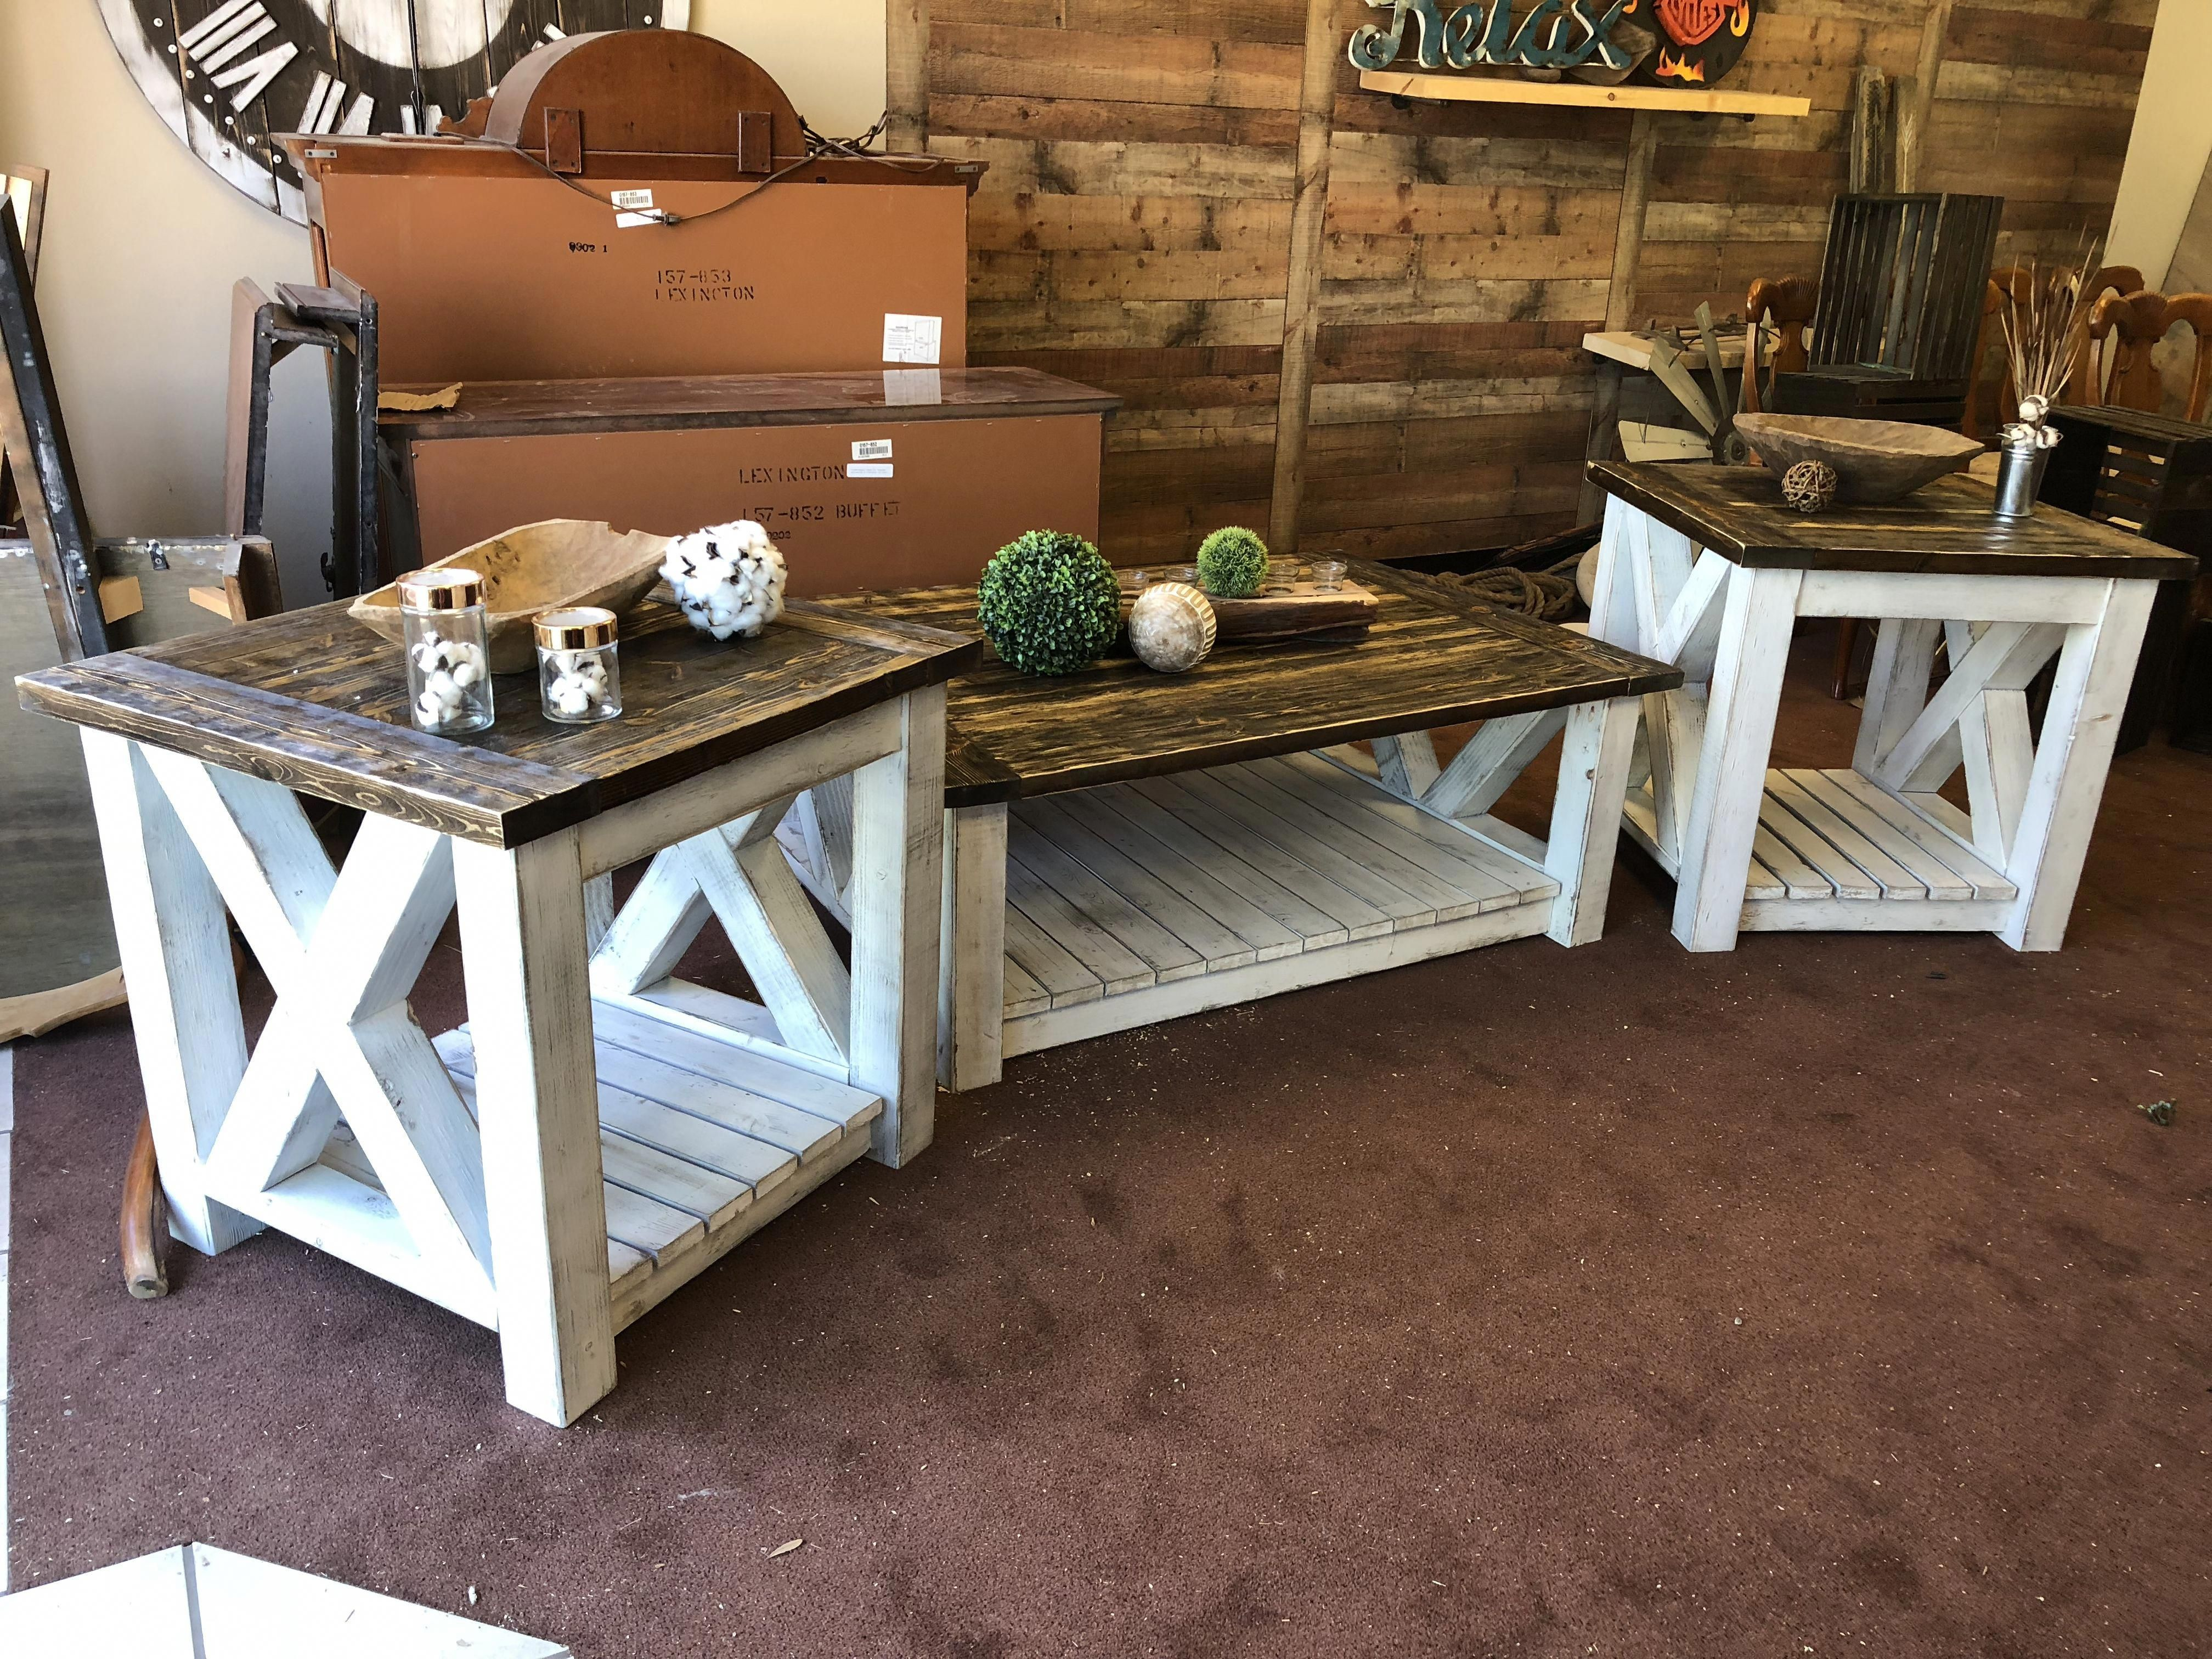 Rustic Distressed Farmhouse Coffee And End Tables By Nailbender S In Amarillo Tx 100 Woodworki Coffee Table Farmhouse Farmhouse End Tables Rustic End Tables [ 3024 x 4032 Pixel ]